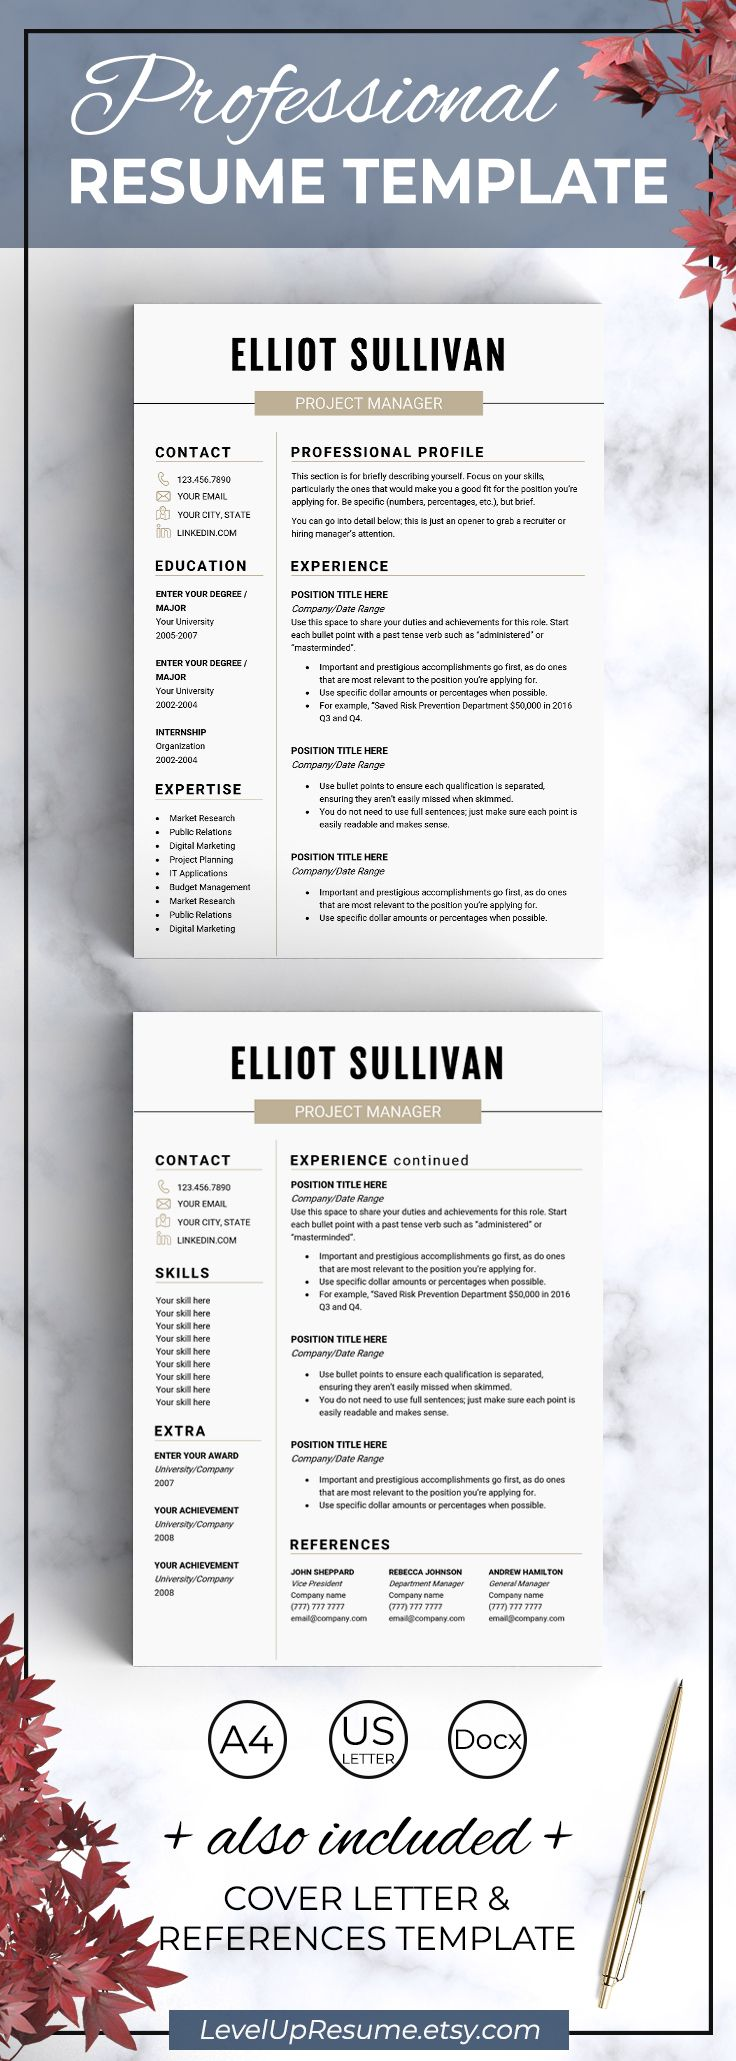 Modern Resume Template Professional Resume Design Career Advice